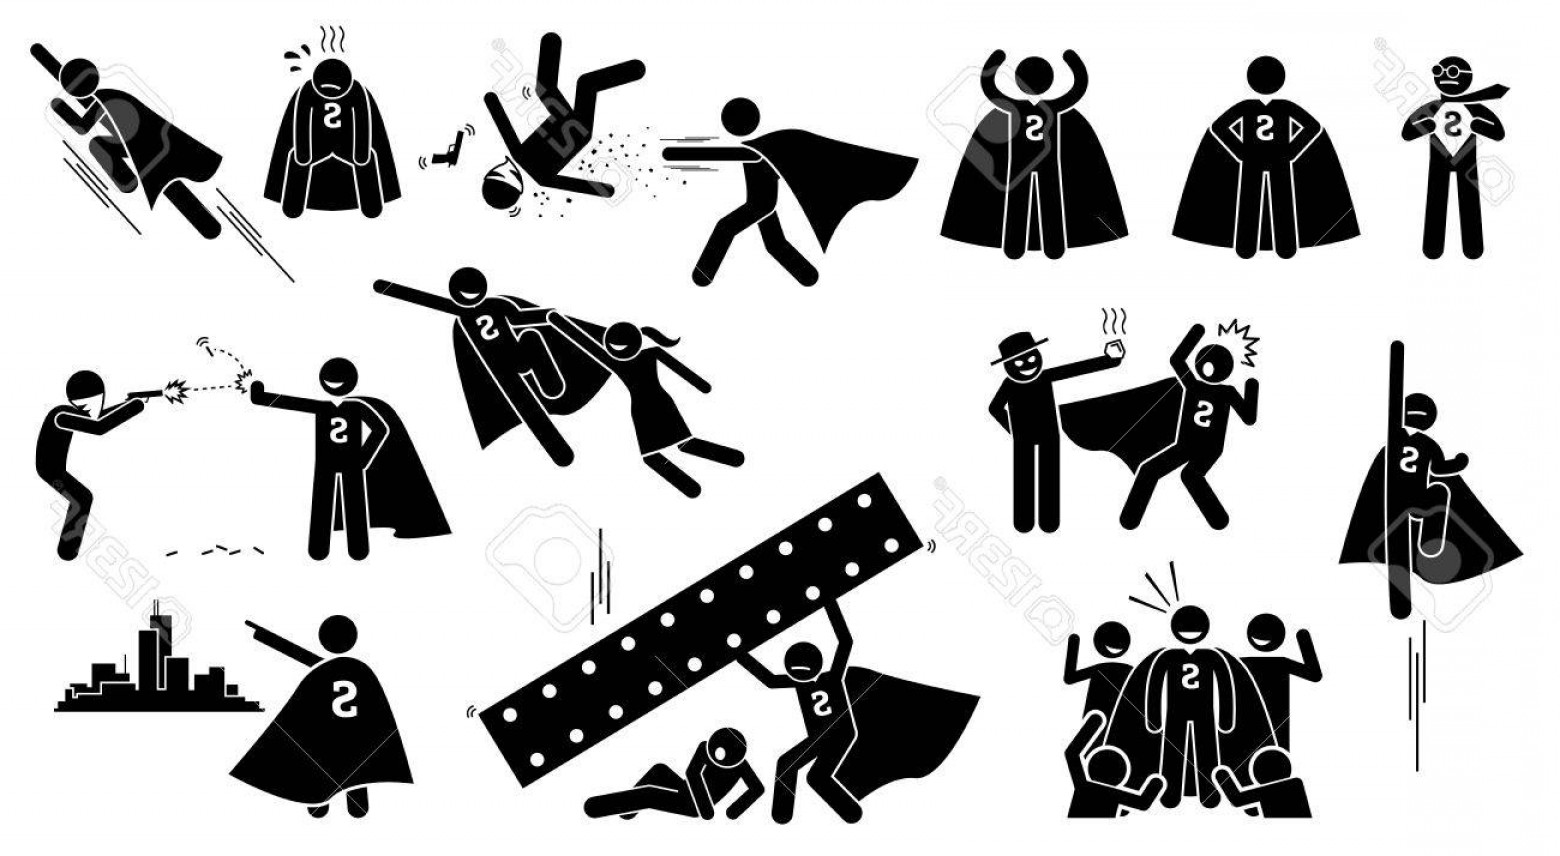 Superman Black And White Vector: Photostock Vector Stickman Superman Superhero Cliparts Depict A Hero Character In Actions The Superhero Is Beating Bad